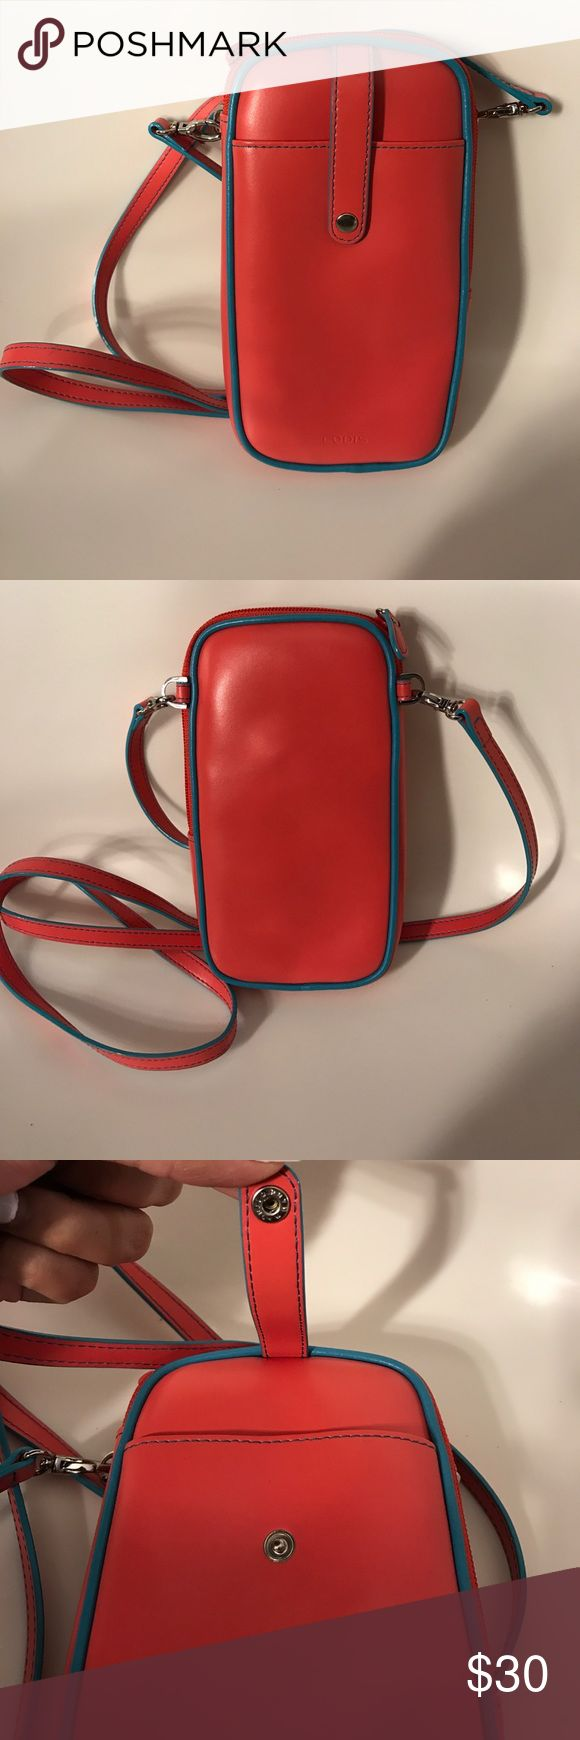 """Lodis Phone Crossbody NWOT. Part of the spring 2017 collection. Genuine leather. Tested with iphone 7 and fits perfectly. The interior includes 6 credit card slots. The exterior has a pocket with a snap closure. H: 7"""" L: 3.5"""" W: 1"""" Bags Mini Bags"""